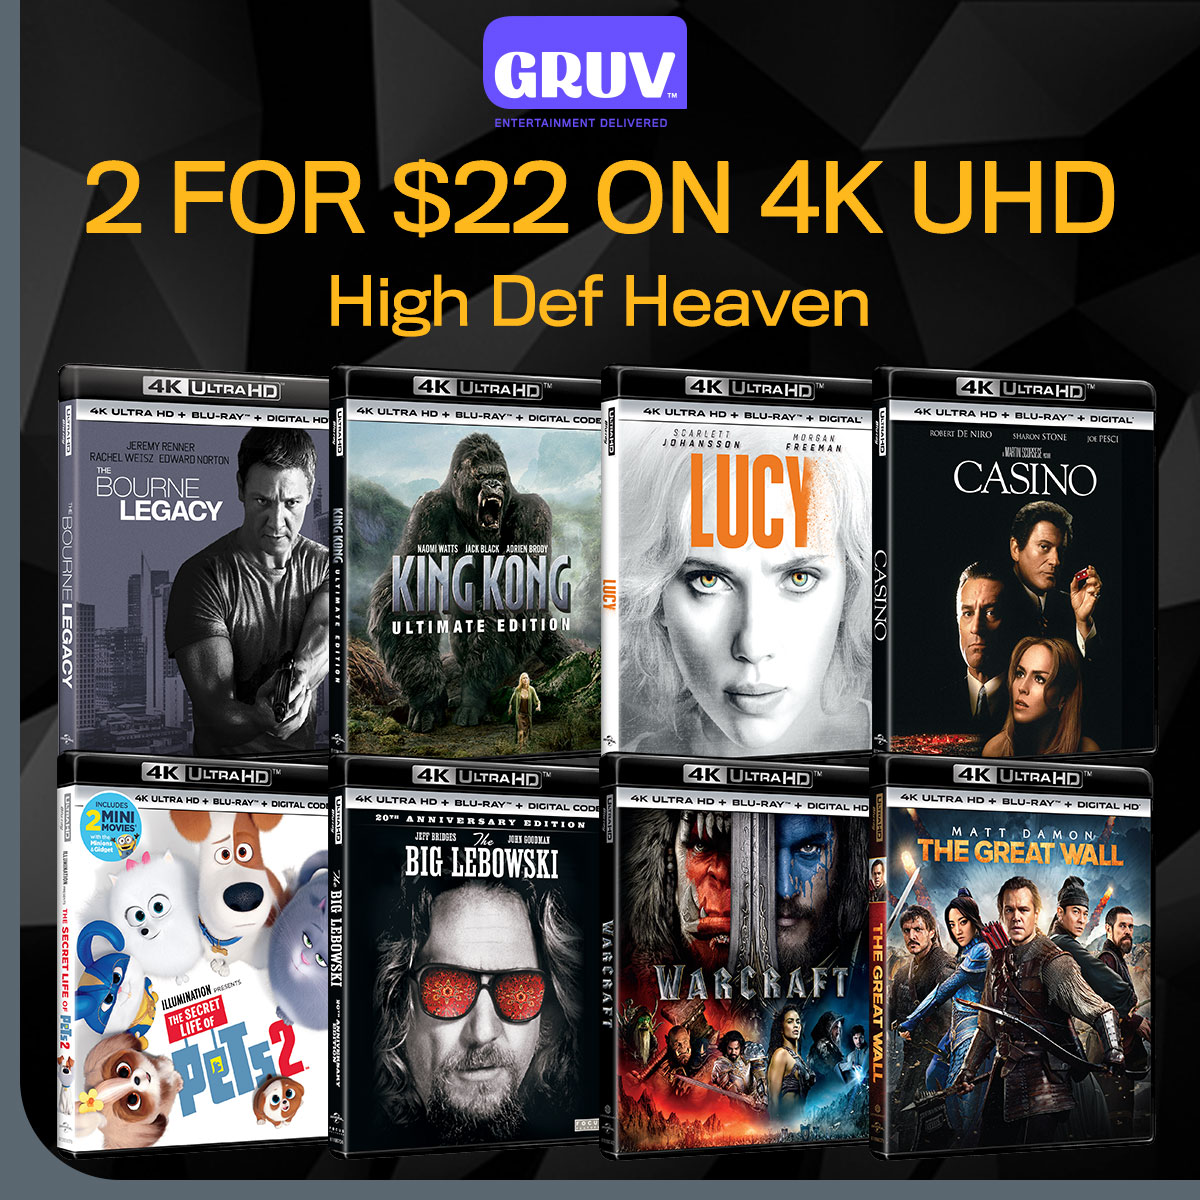 Get 2 4K UHD Movies For $22